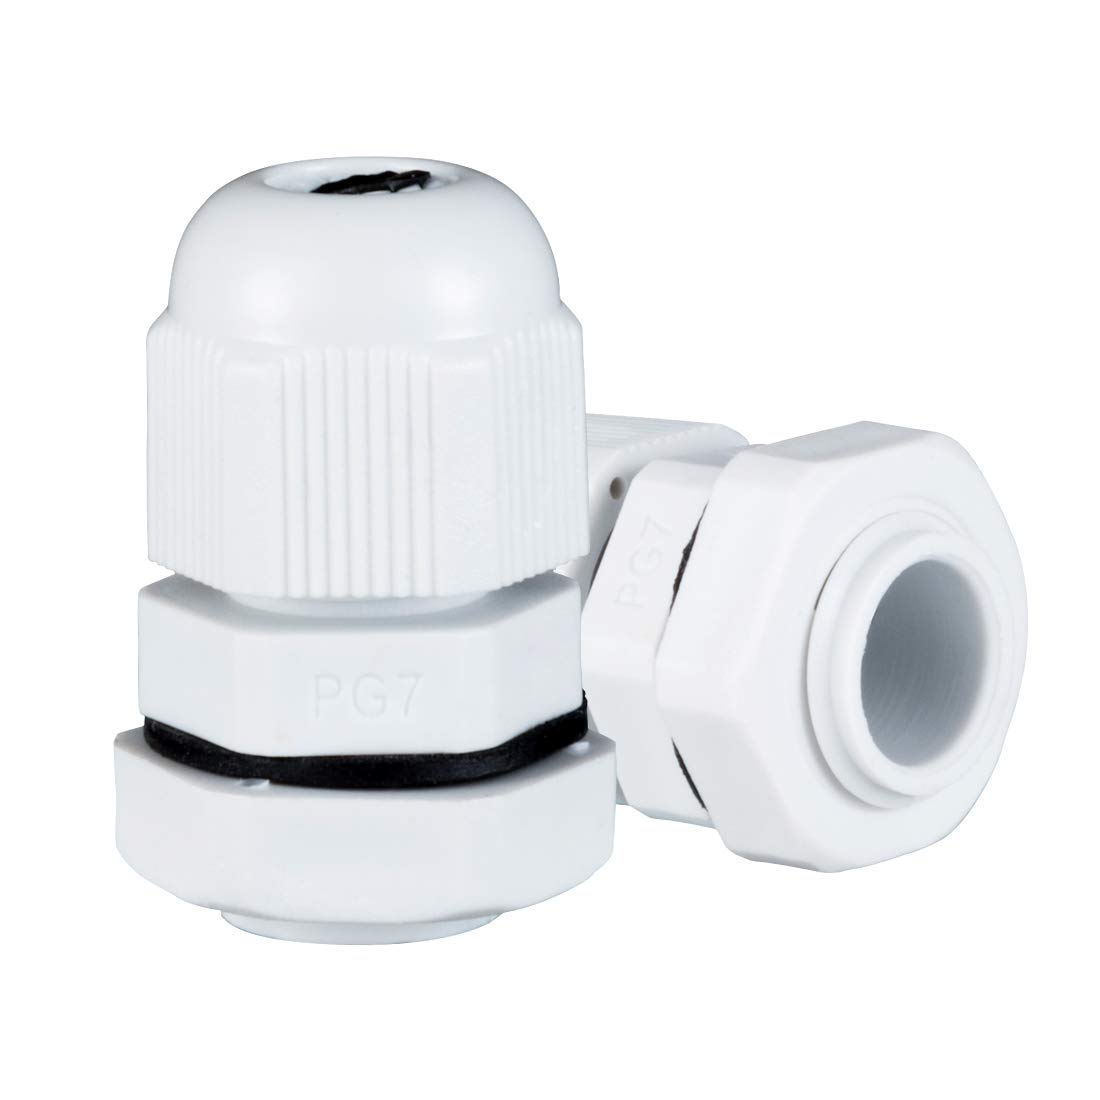 uxcell 10 Pcs PG7 Waterproof Nylon Cable Gland Joint Adjustable Connector for 3mm 6.5mm Dia Cable Wire